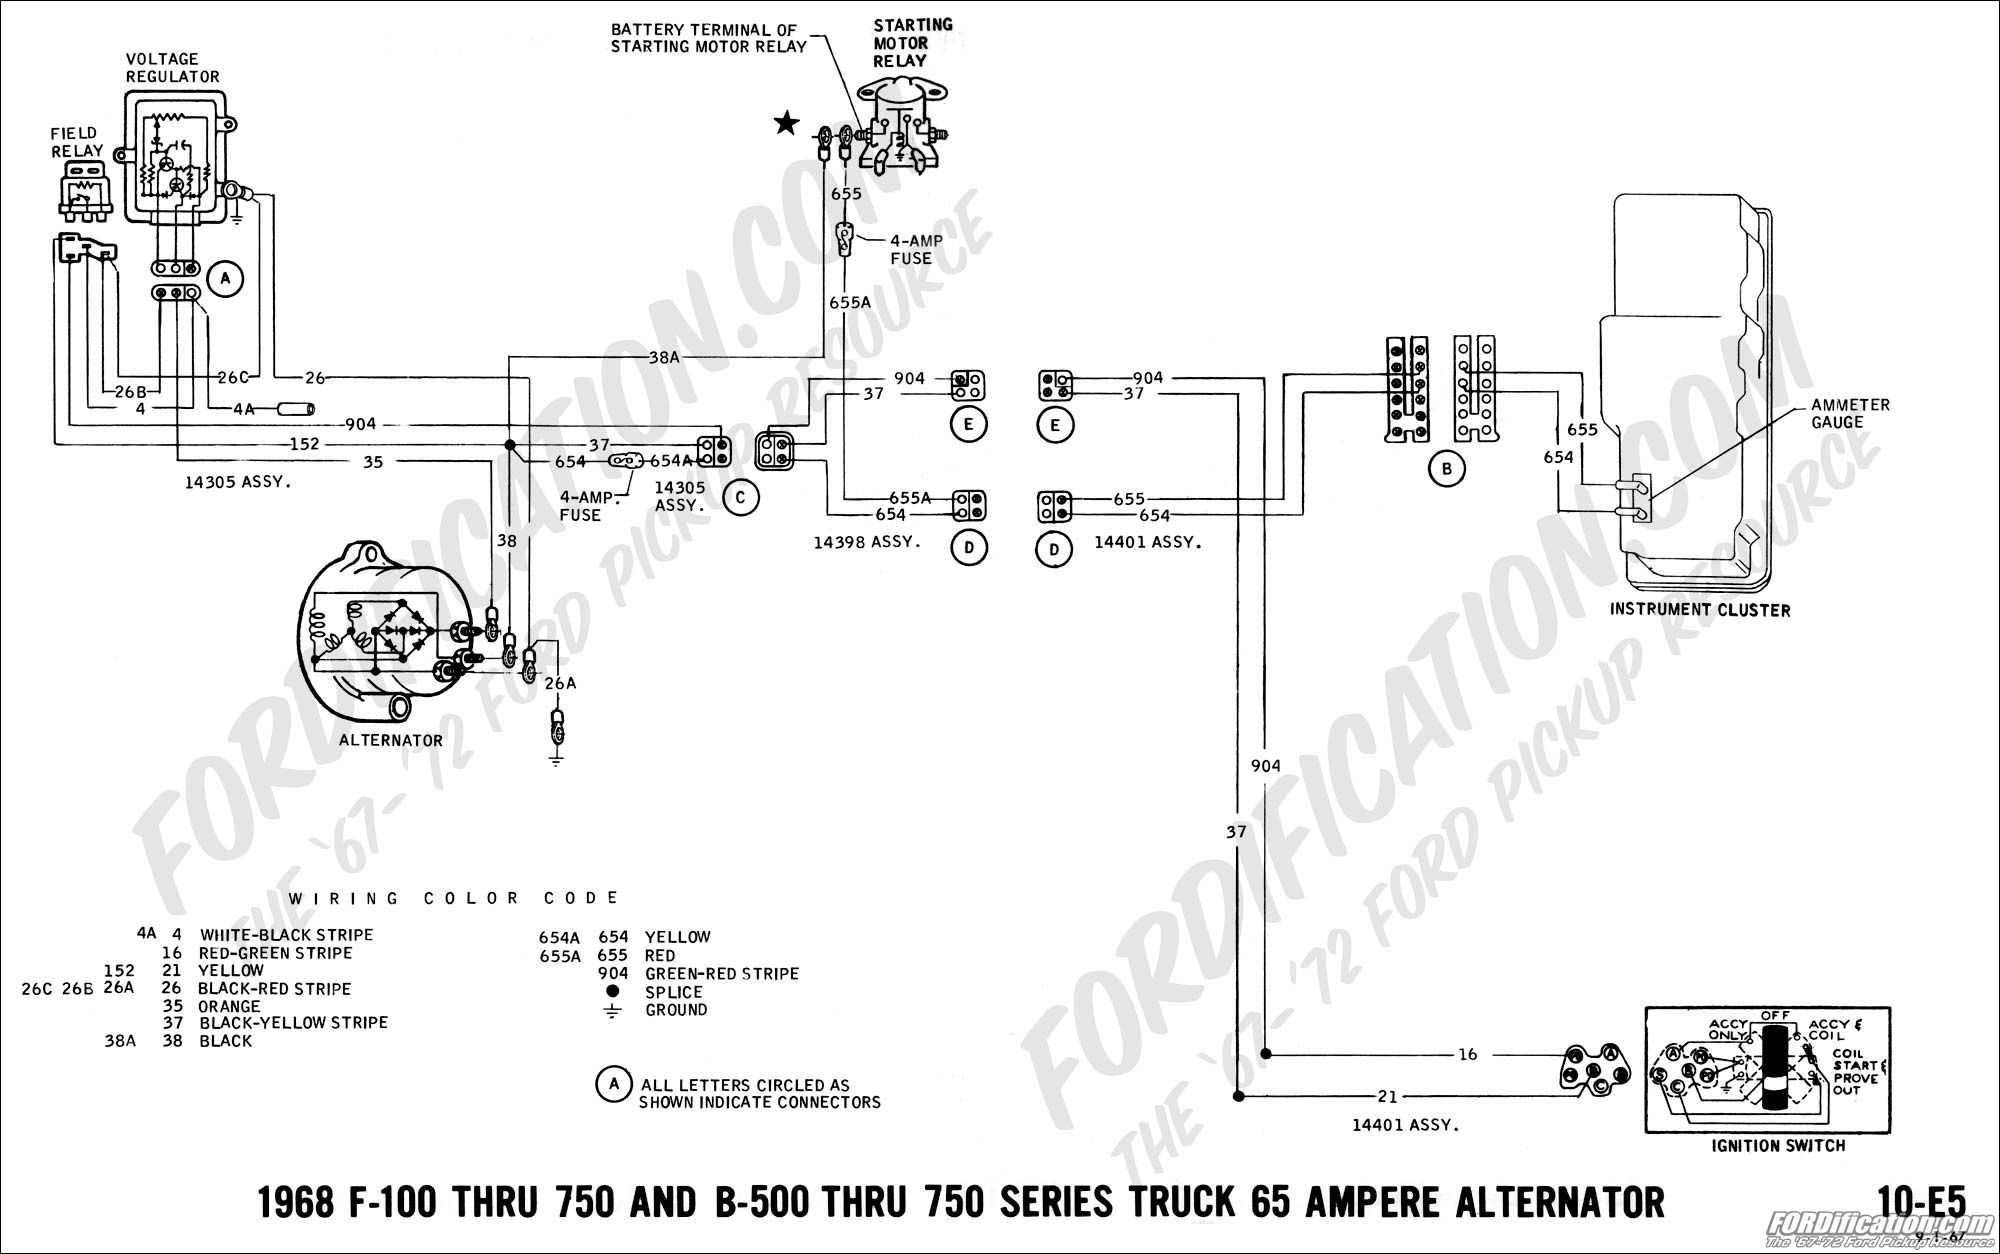 68 ford alternator wiring diagram 76 ford f150 pinterest ford rh pinterest com Ford F-150 Wiring Diagram 1998 Ford Truck Wiring Diagrams